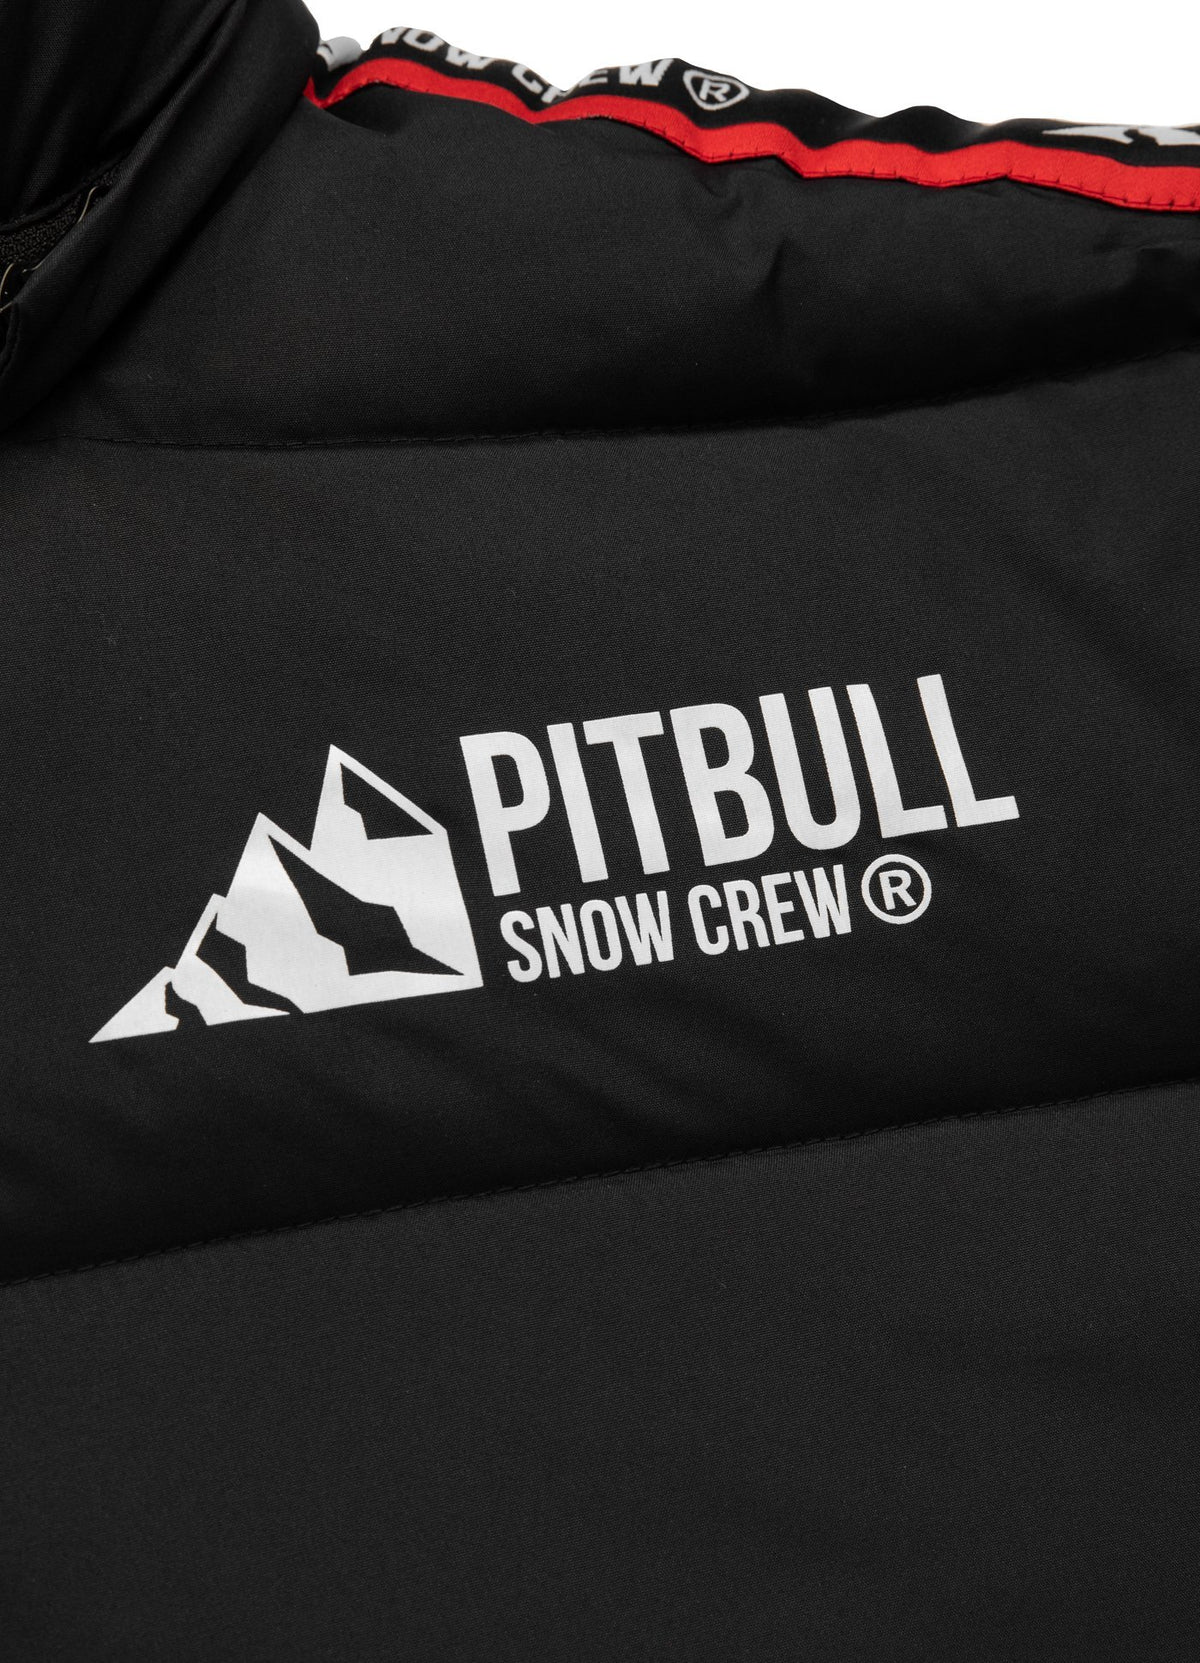 JACKET AIRWAY BLACK - Pitbull West Coast U.S.A.